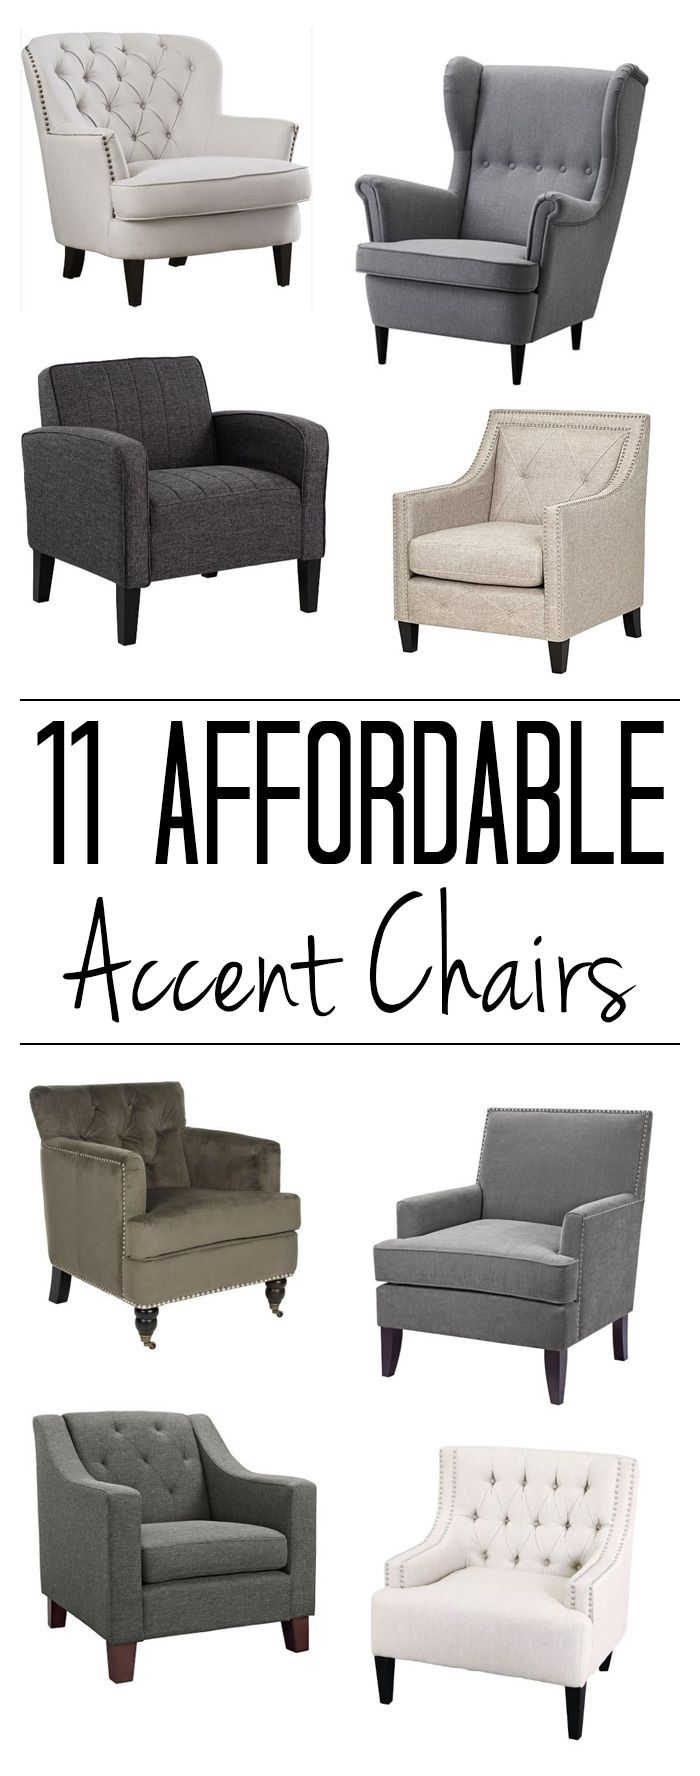 Decorative chairs for bedroom - 11 Accent Chairs Under 350